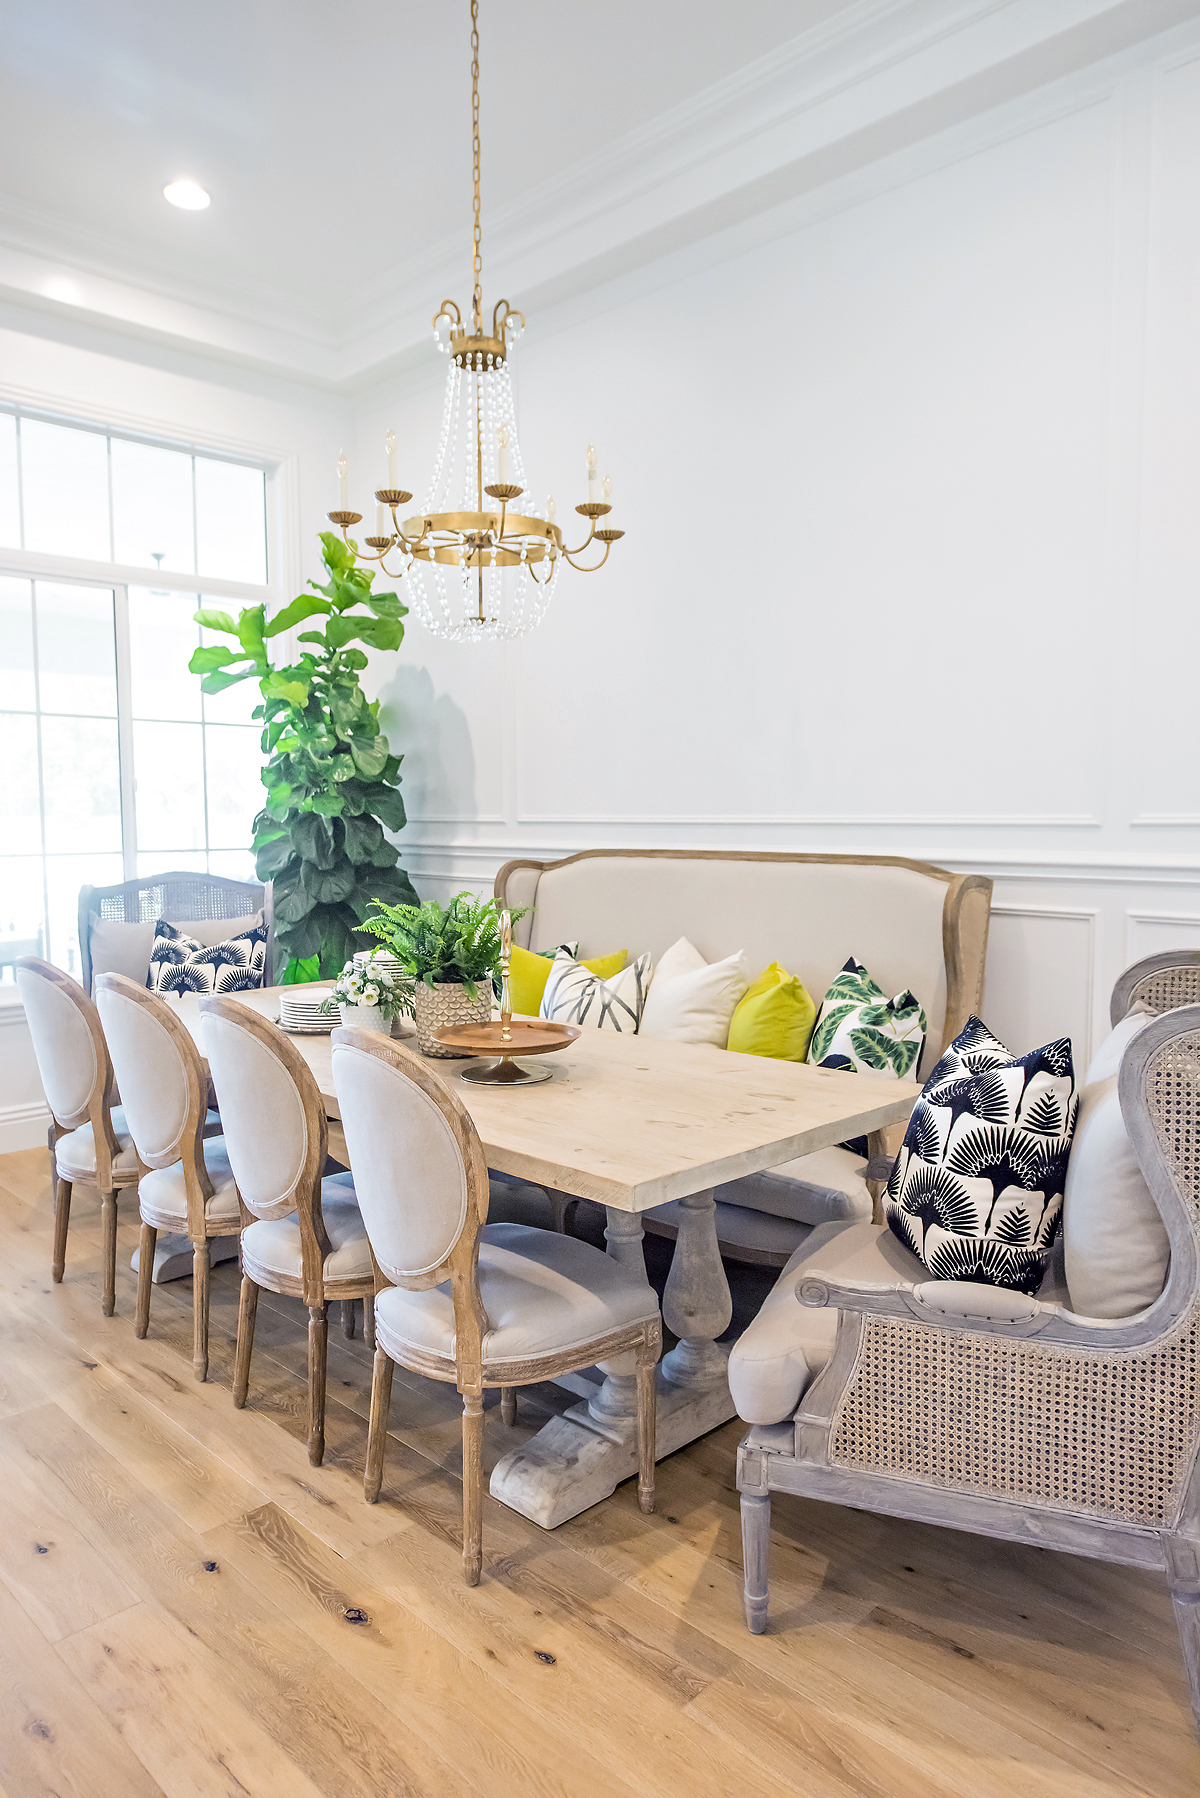 maggie-holmes-dining-room-makeover-with-color-11